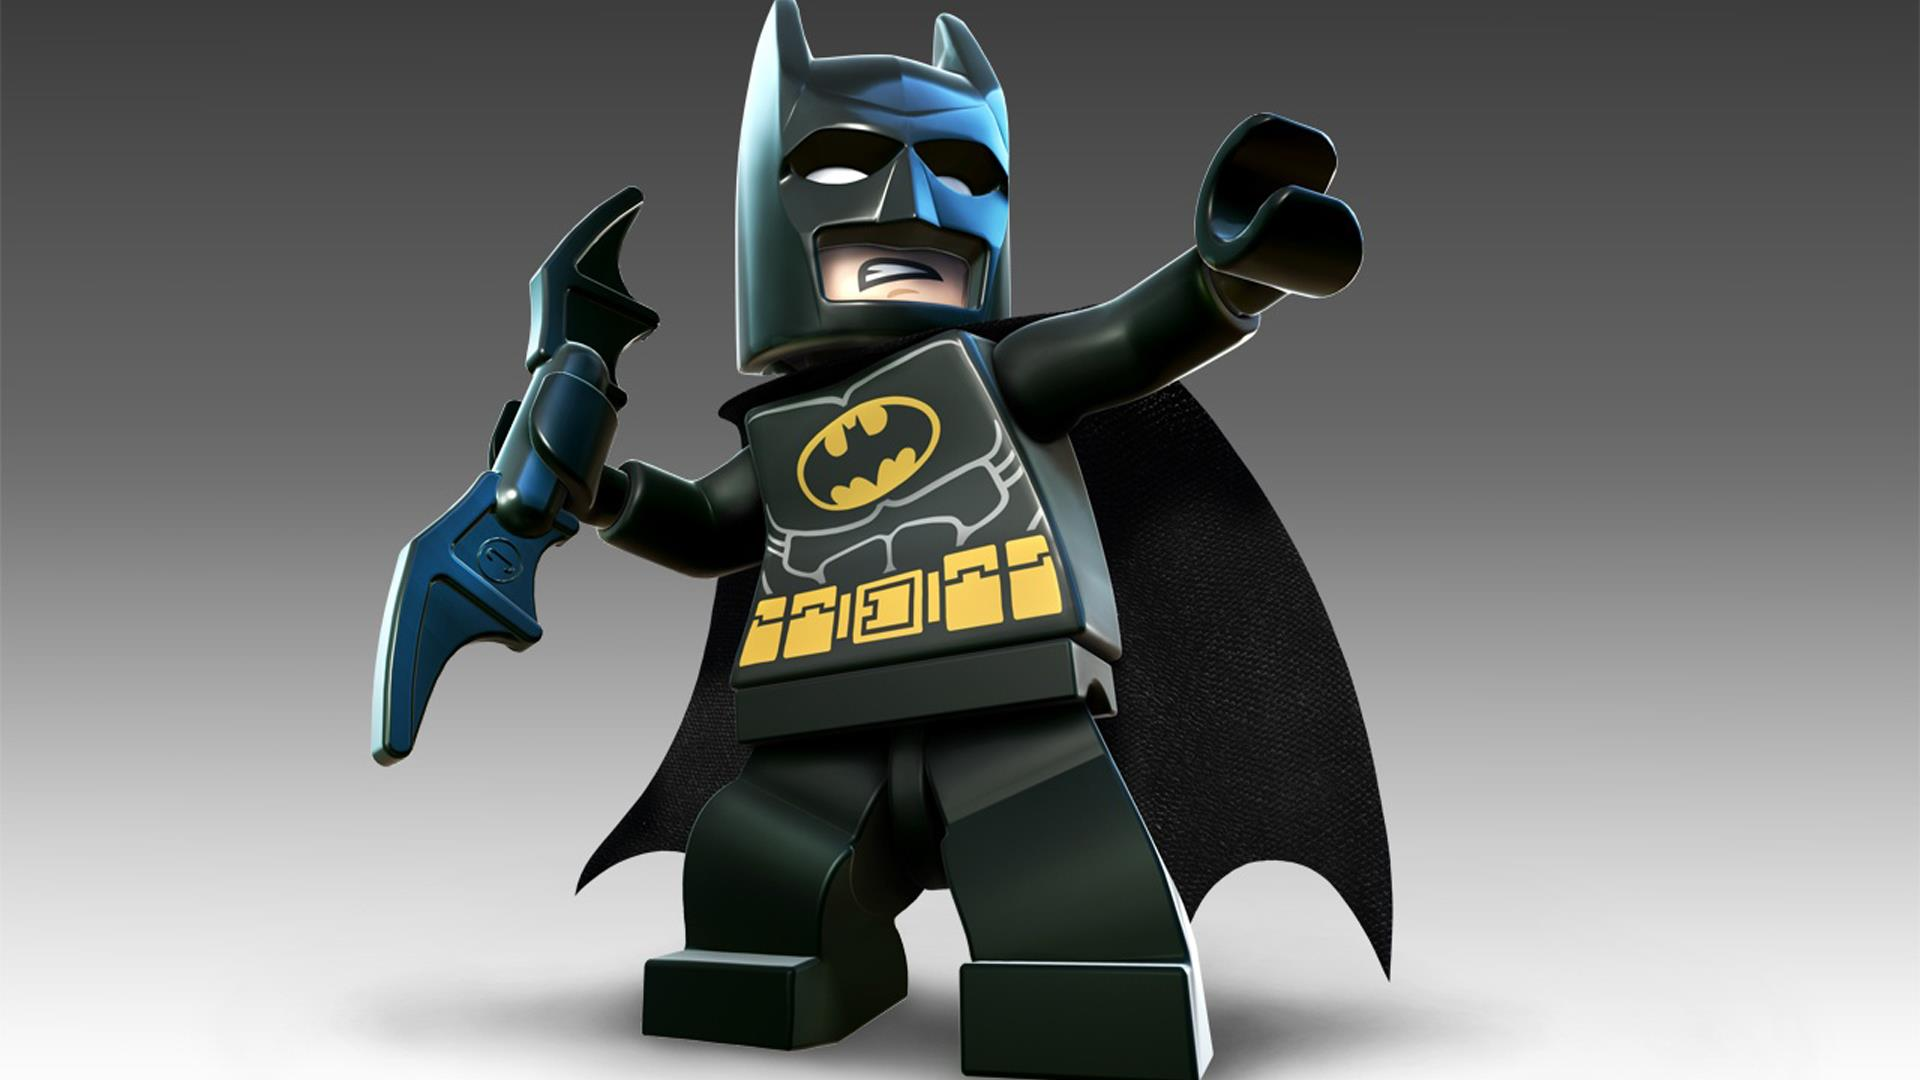 The Lego Batman Movie wallpaper 4